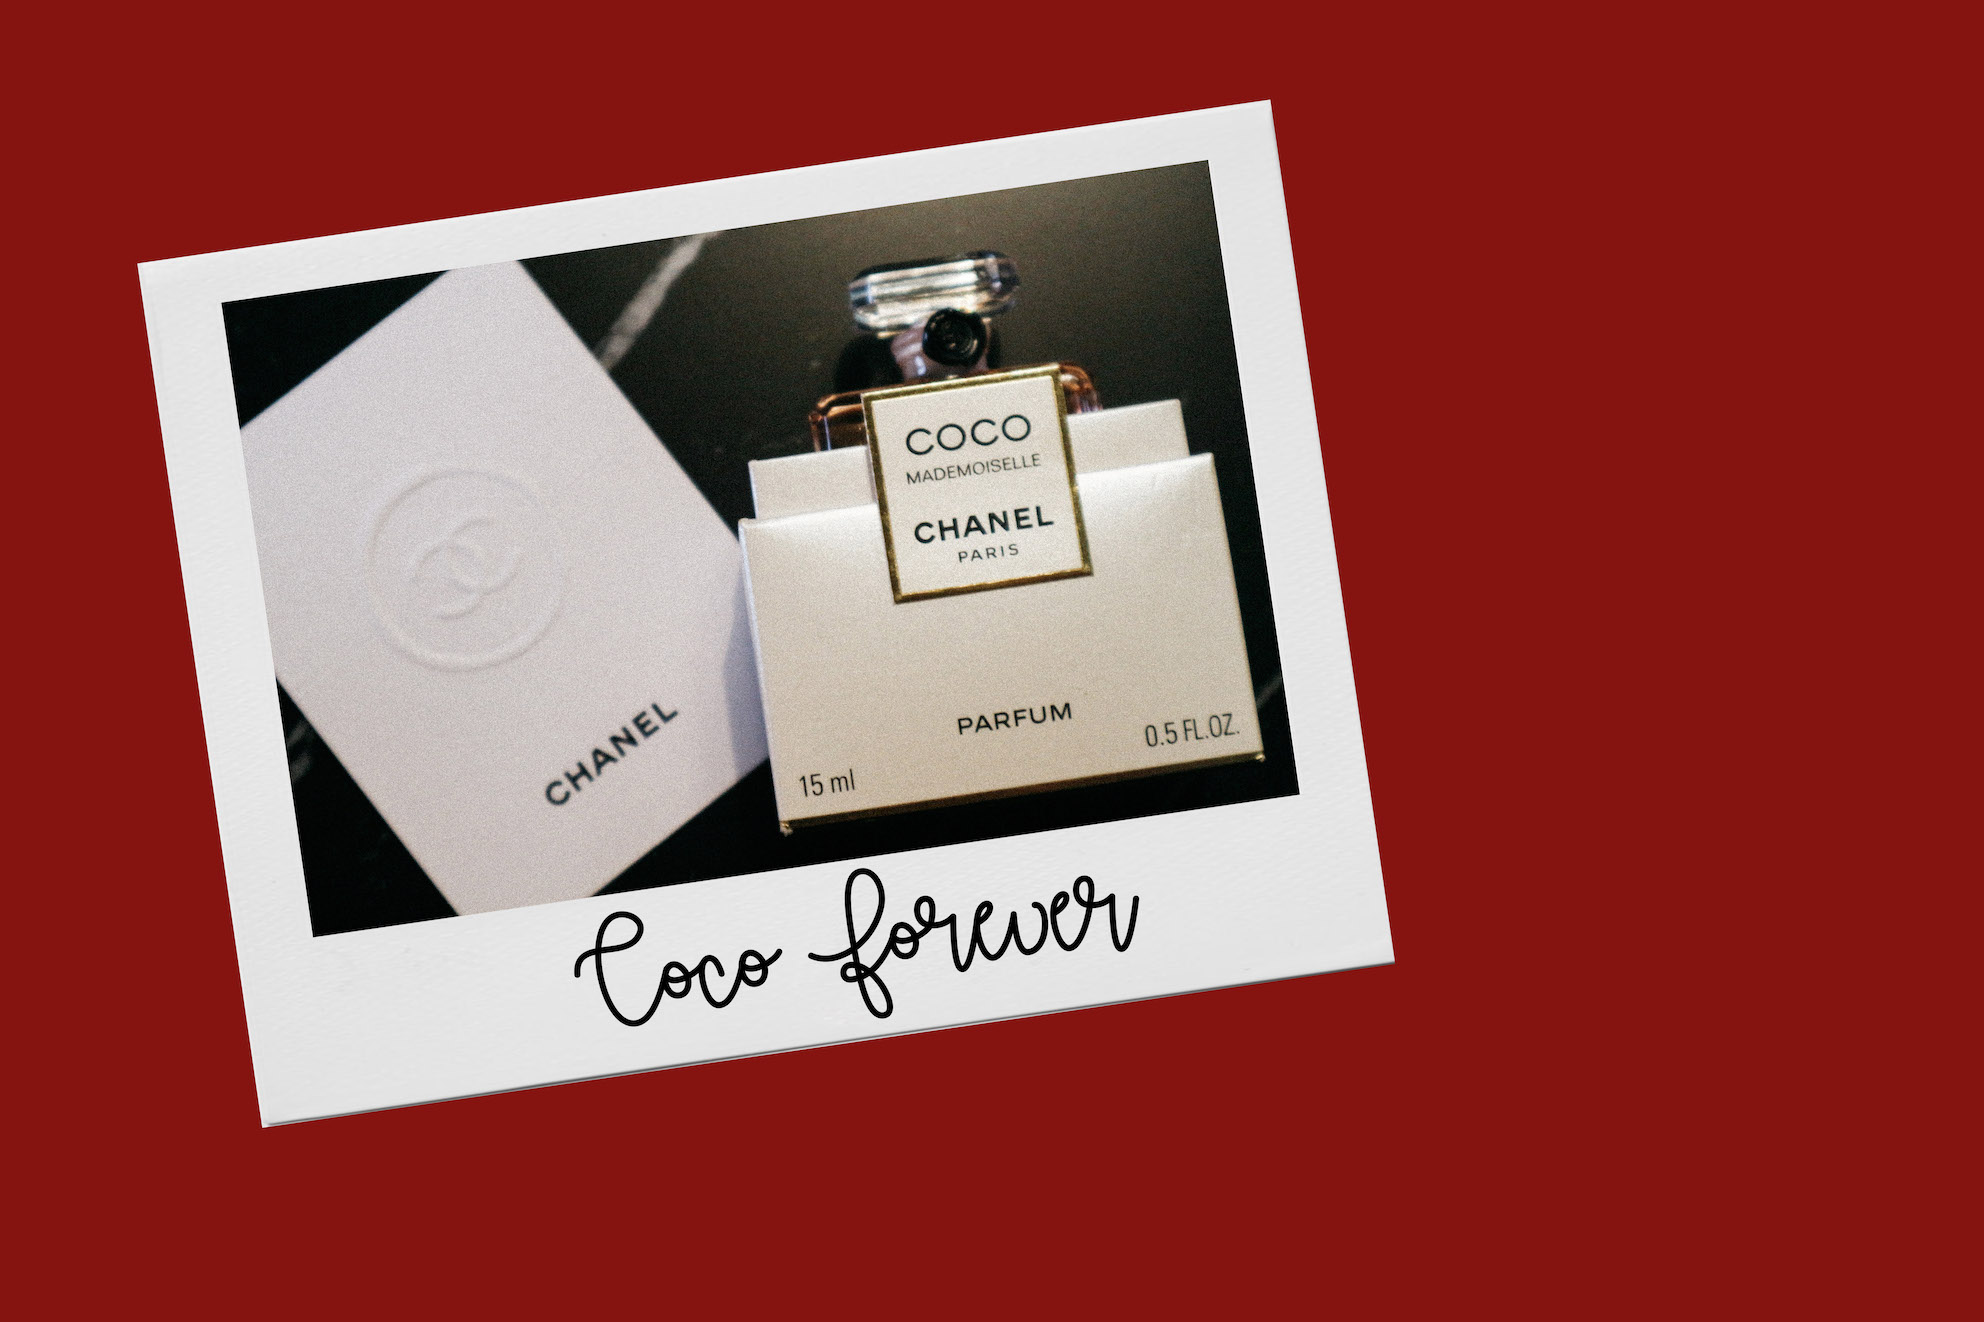 floortjeloves, coco forever, coco mademoiselle, chanel, chanel perfume, Chanel beauty, coco Chanel, Chanel coco mademoiselle intense